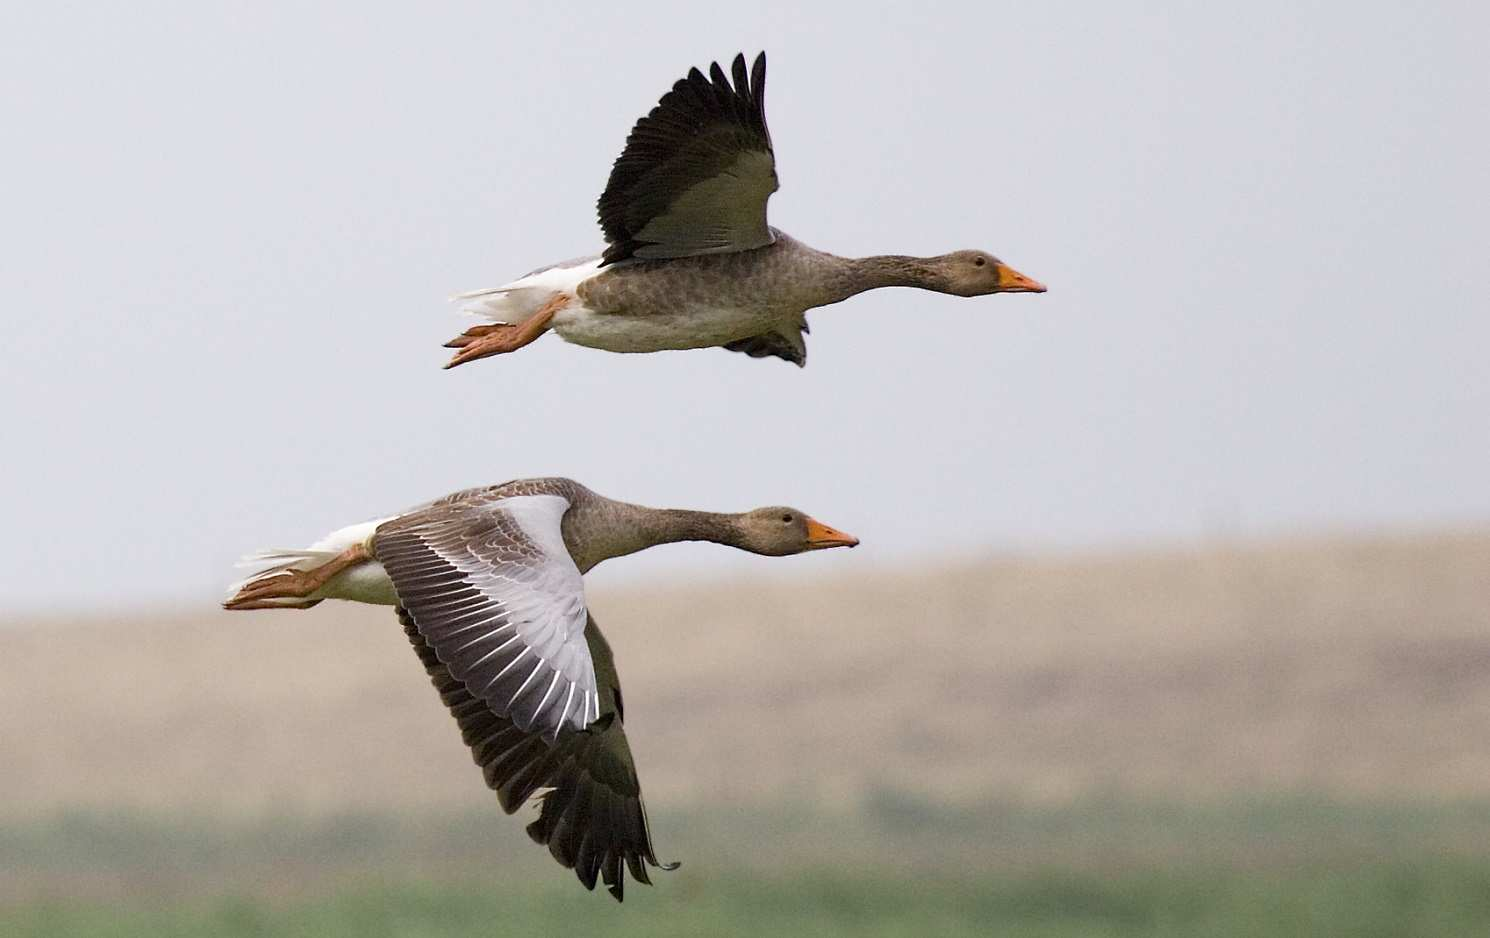 Graylag_geese_(Anser_anser)_in_flight_1700